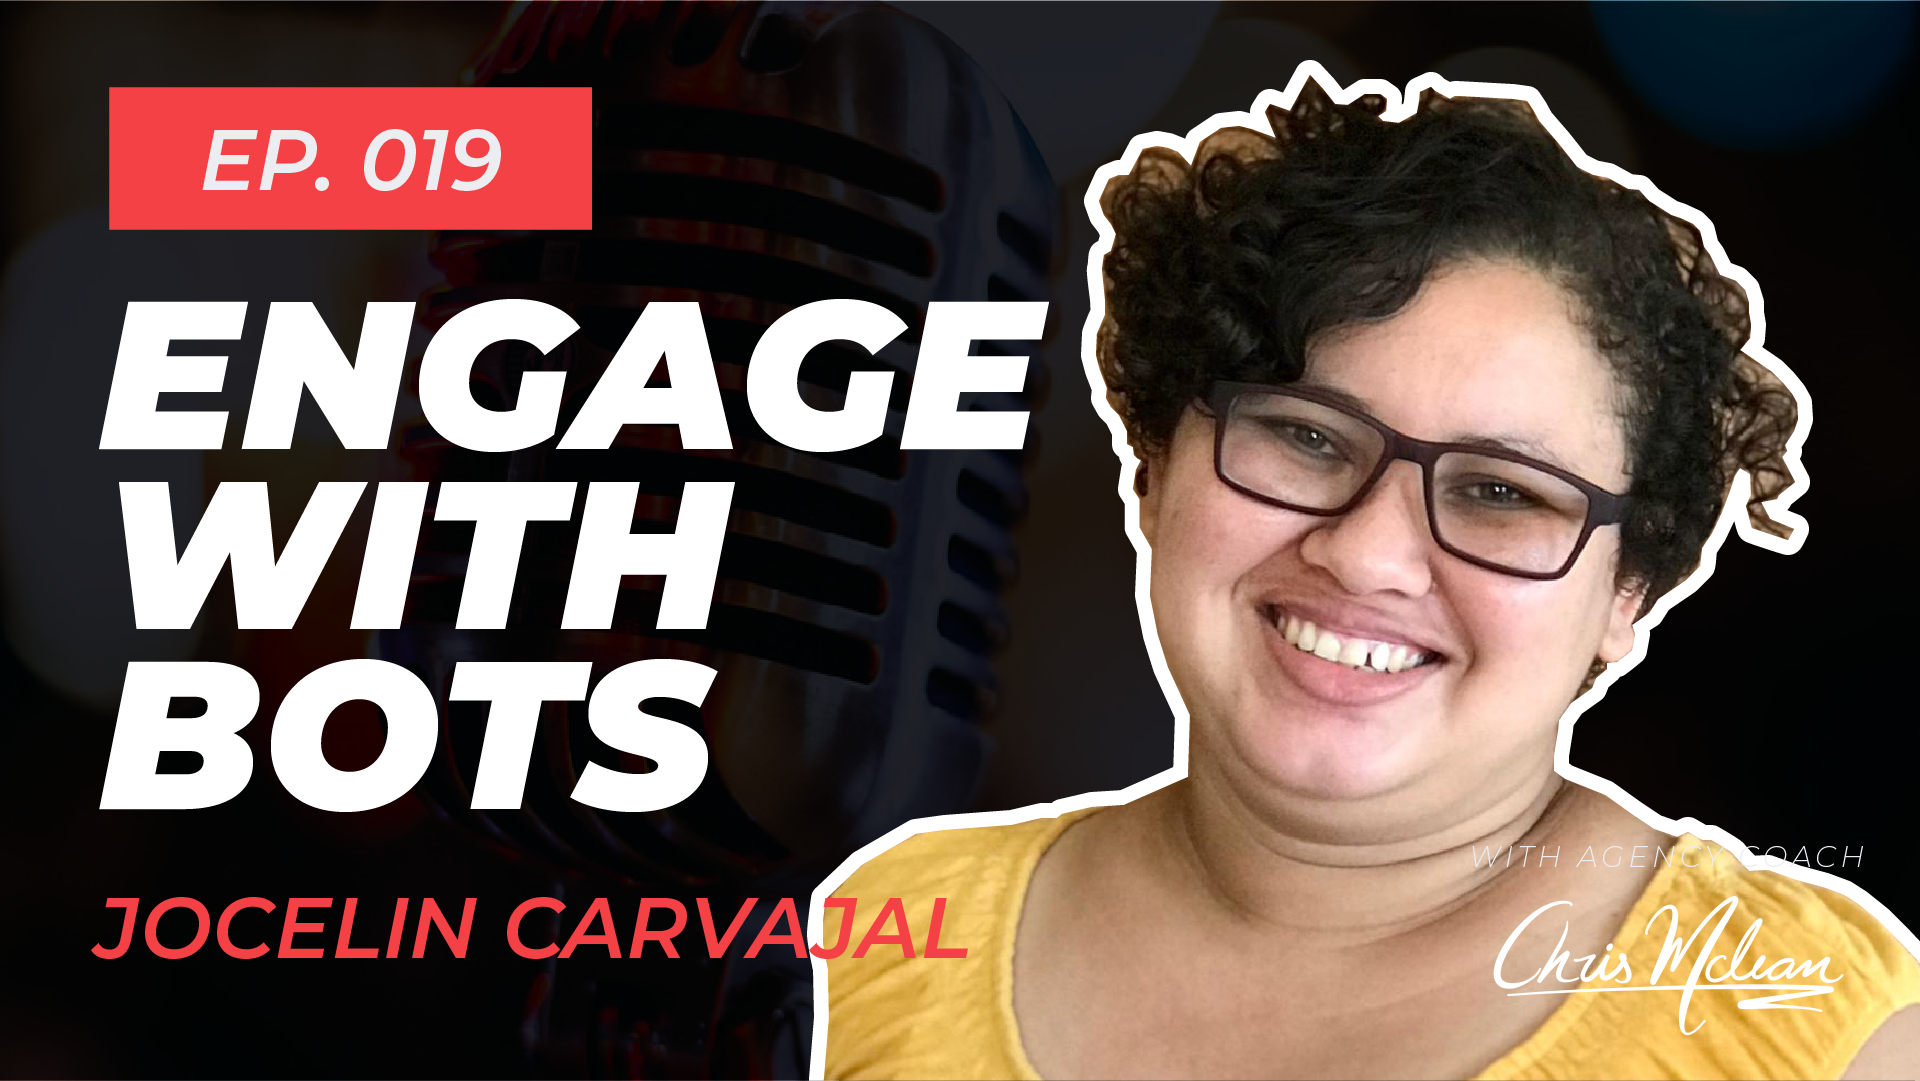 EP019   Engage With Bots with Jocelin Carvajal